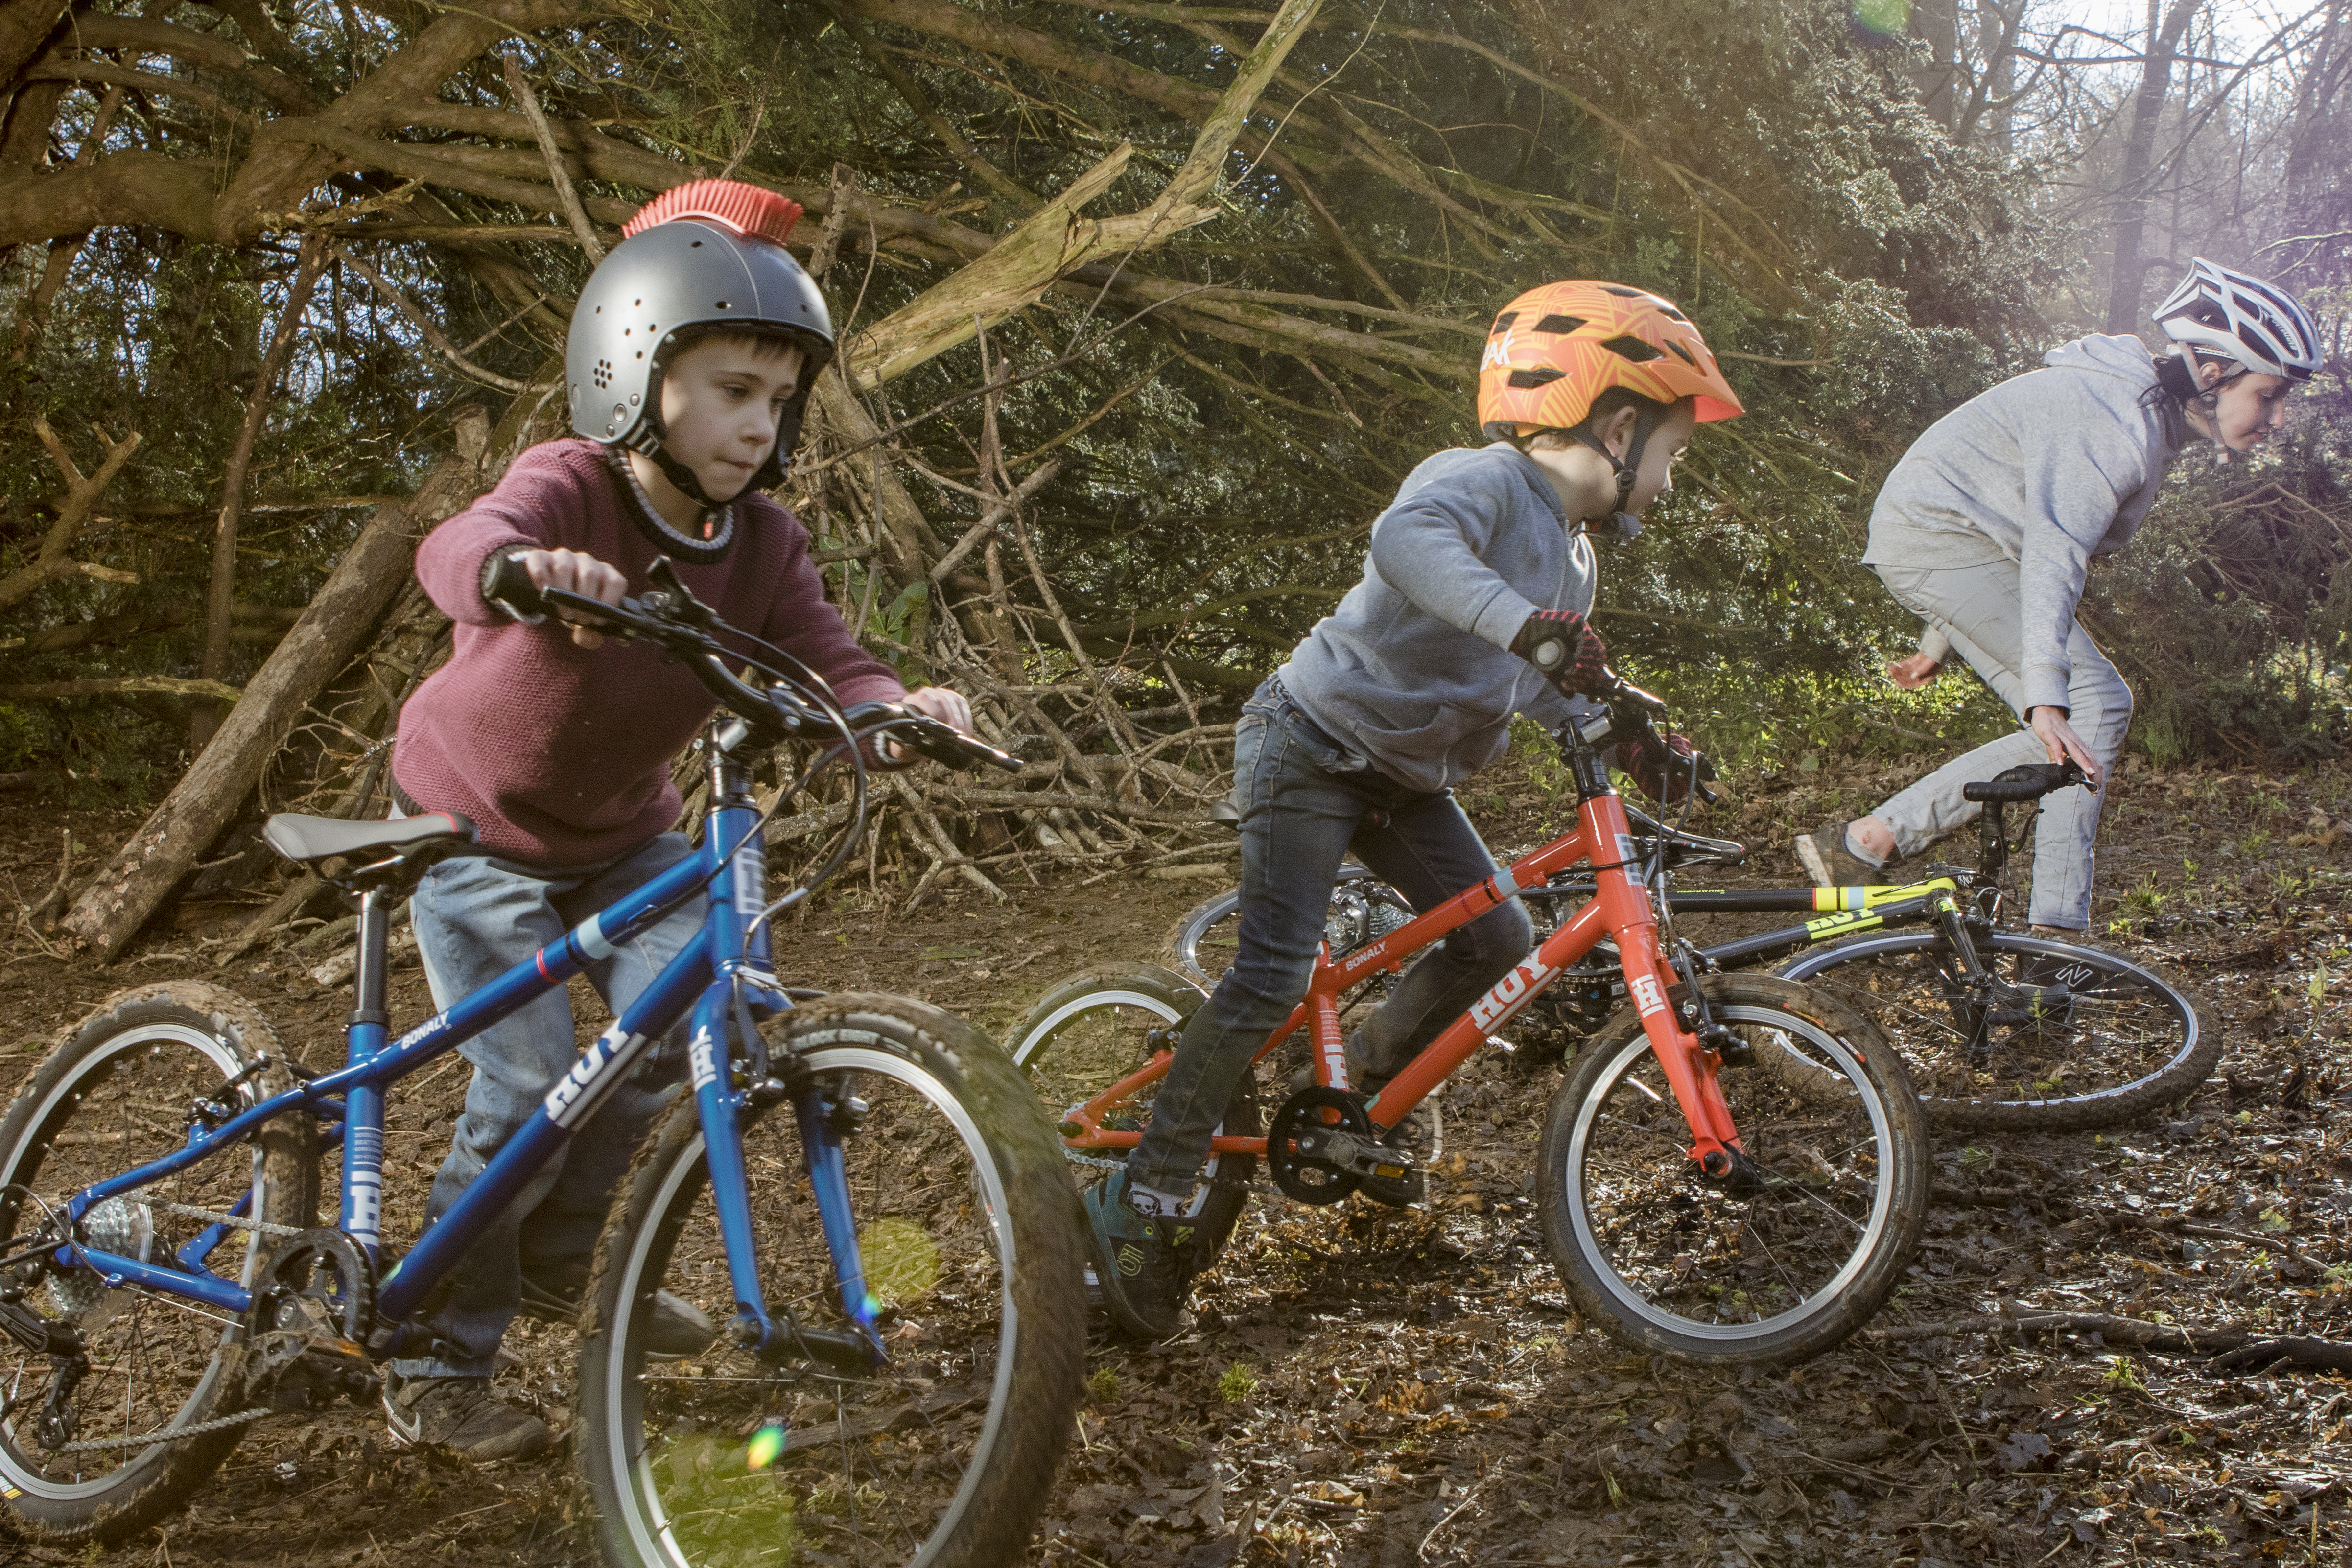 Evans Cycles launch new Hoy kids' bikes - MBR